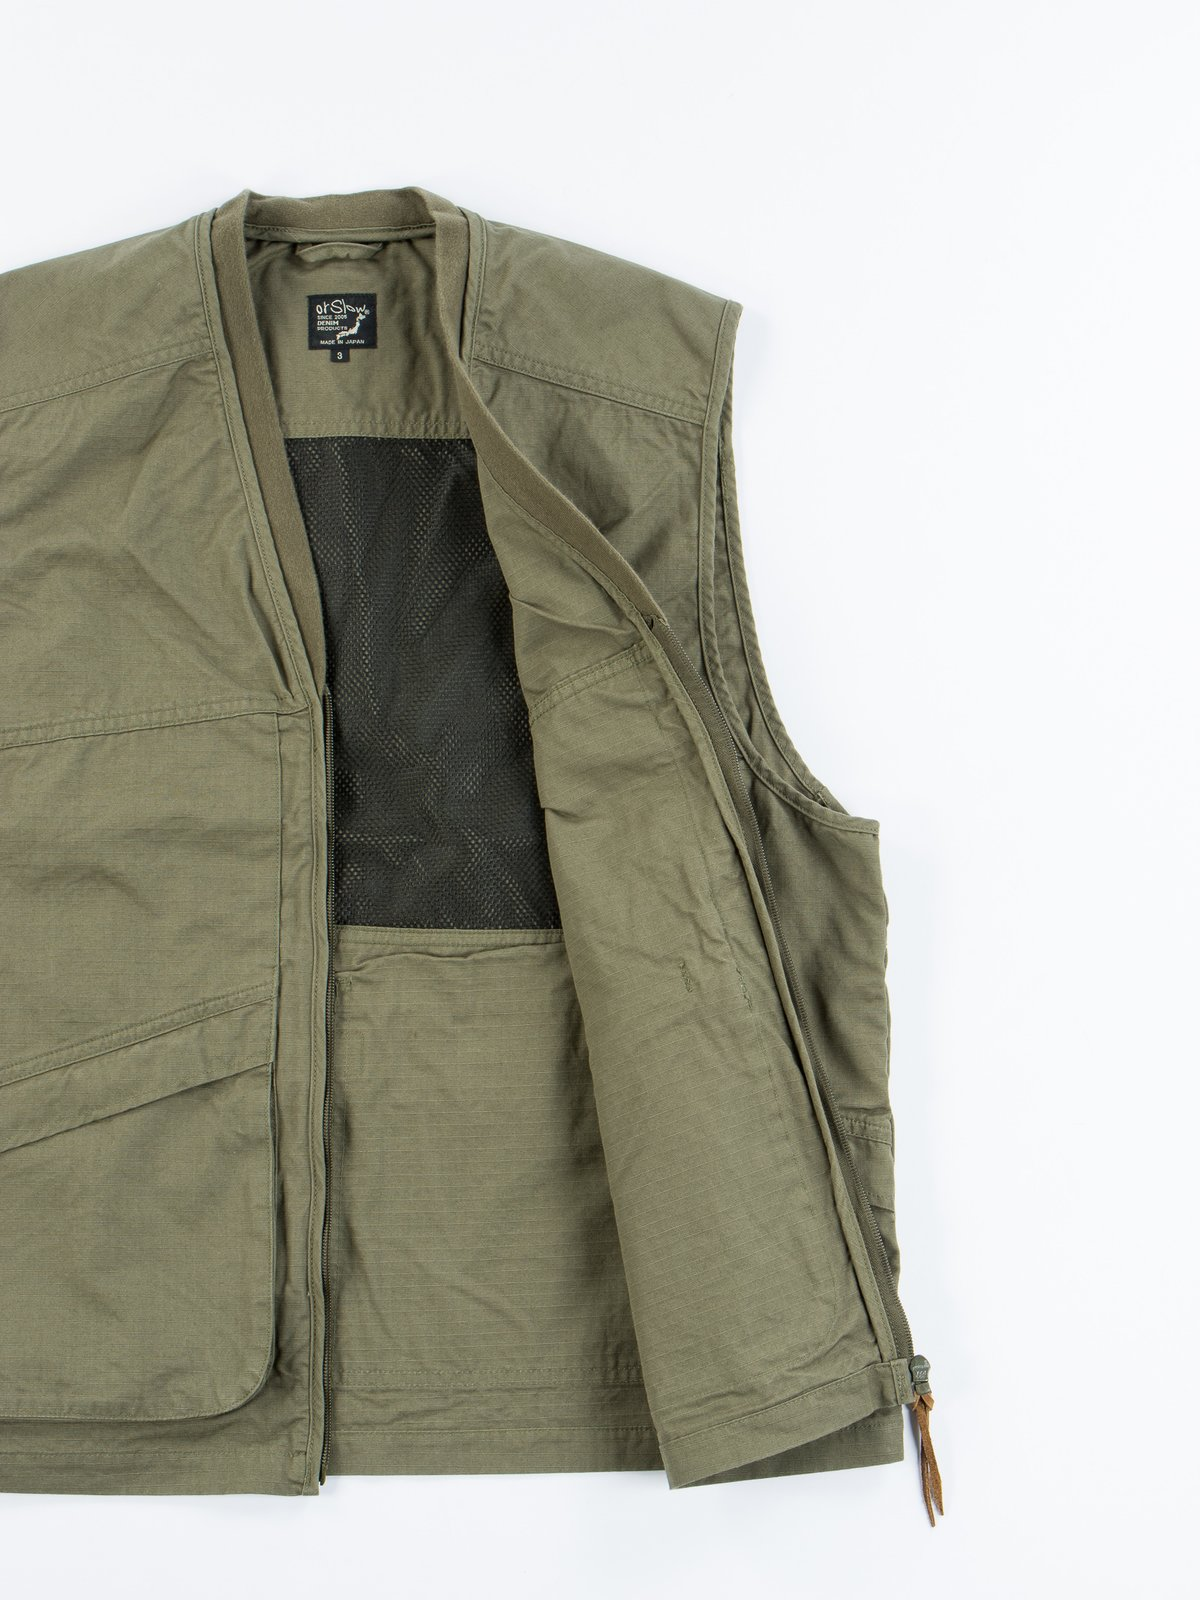 Green Ripstop Utility Vest - Image 6